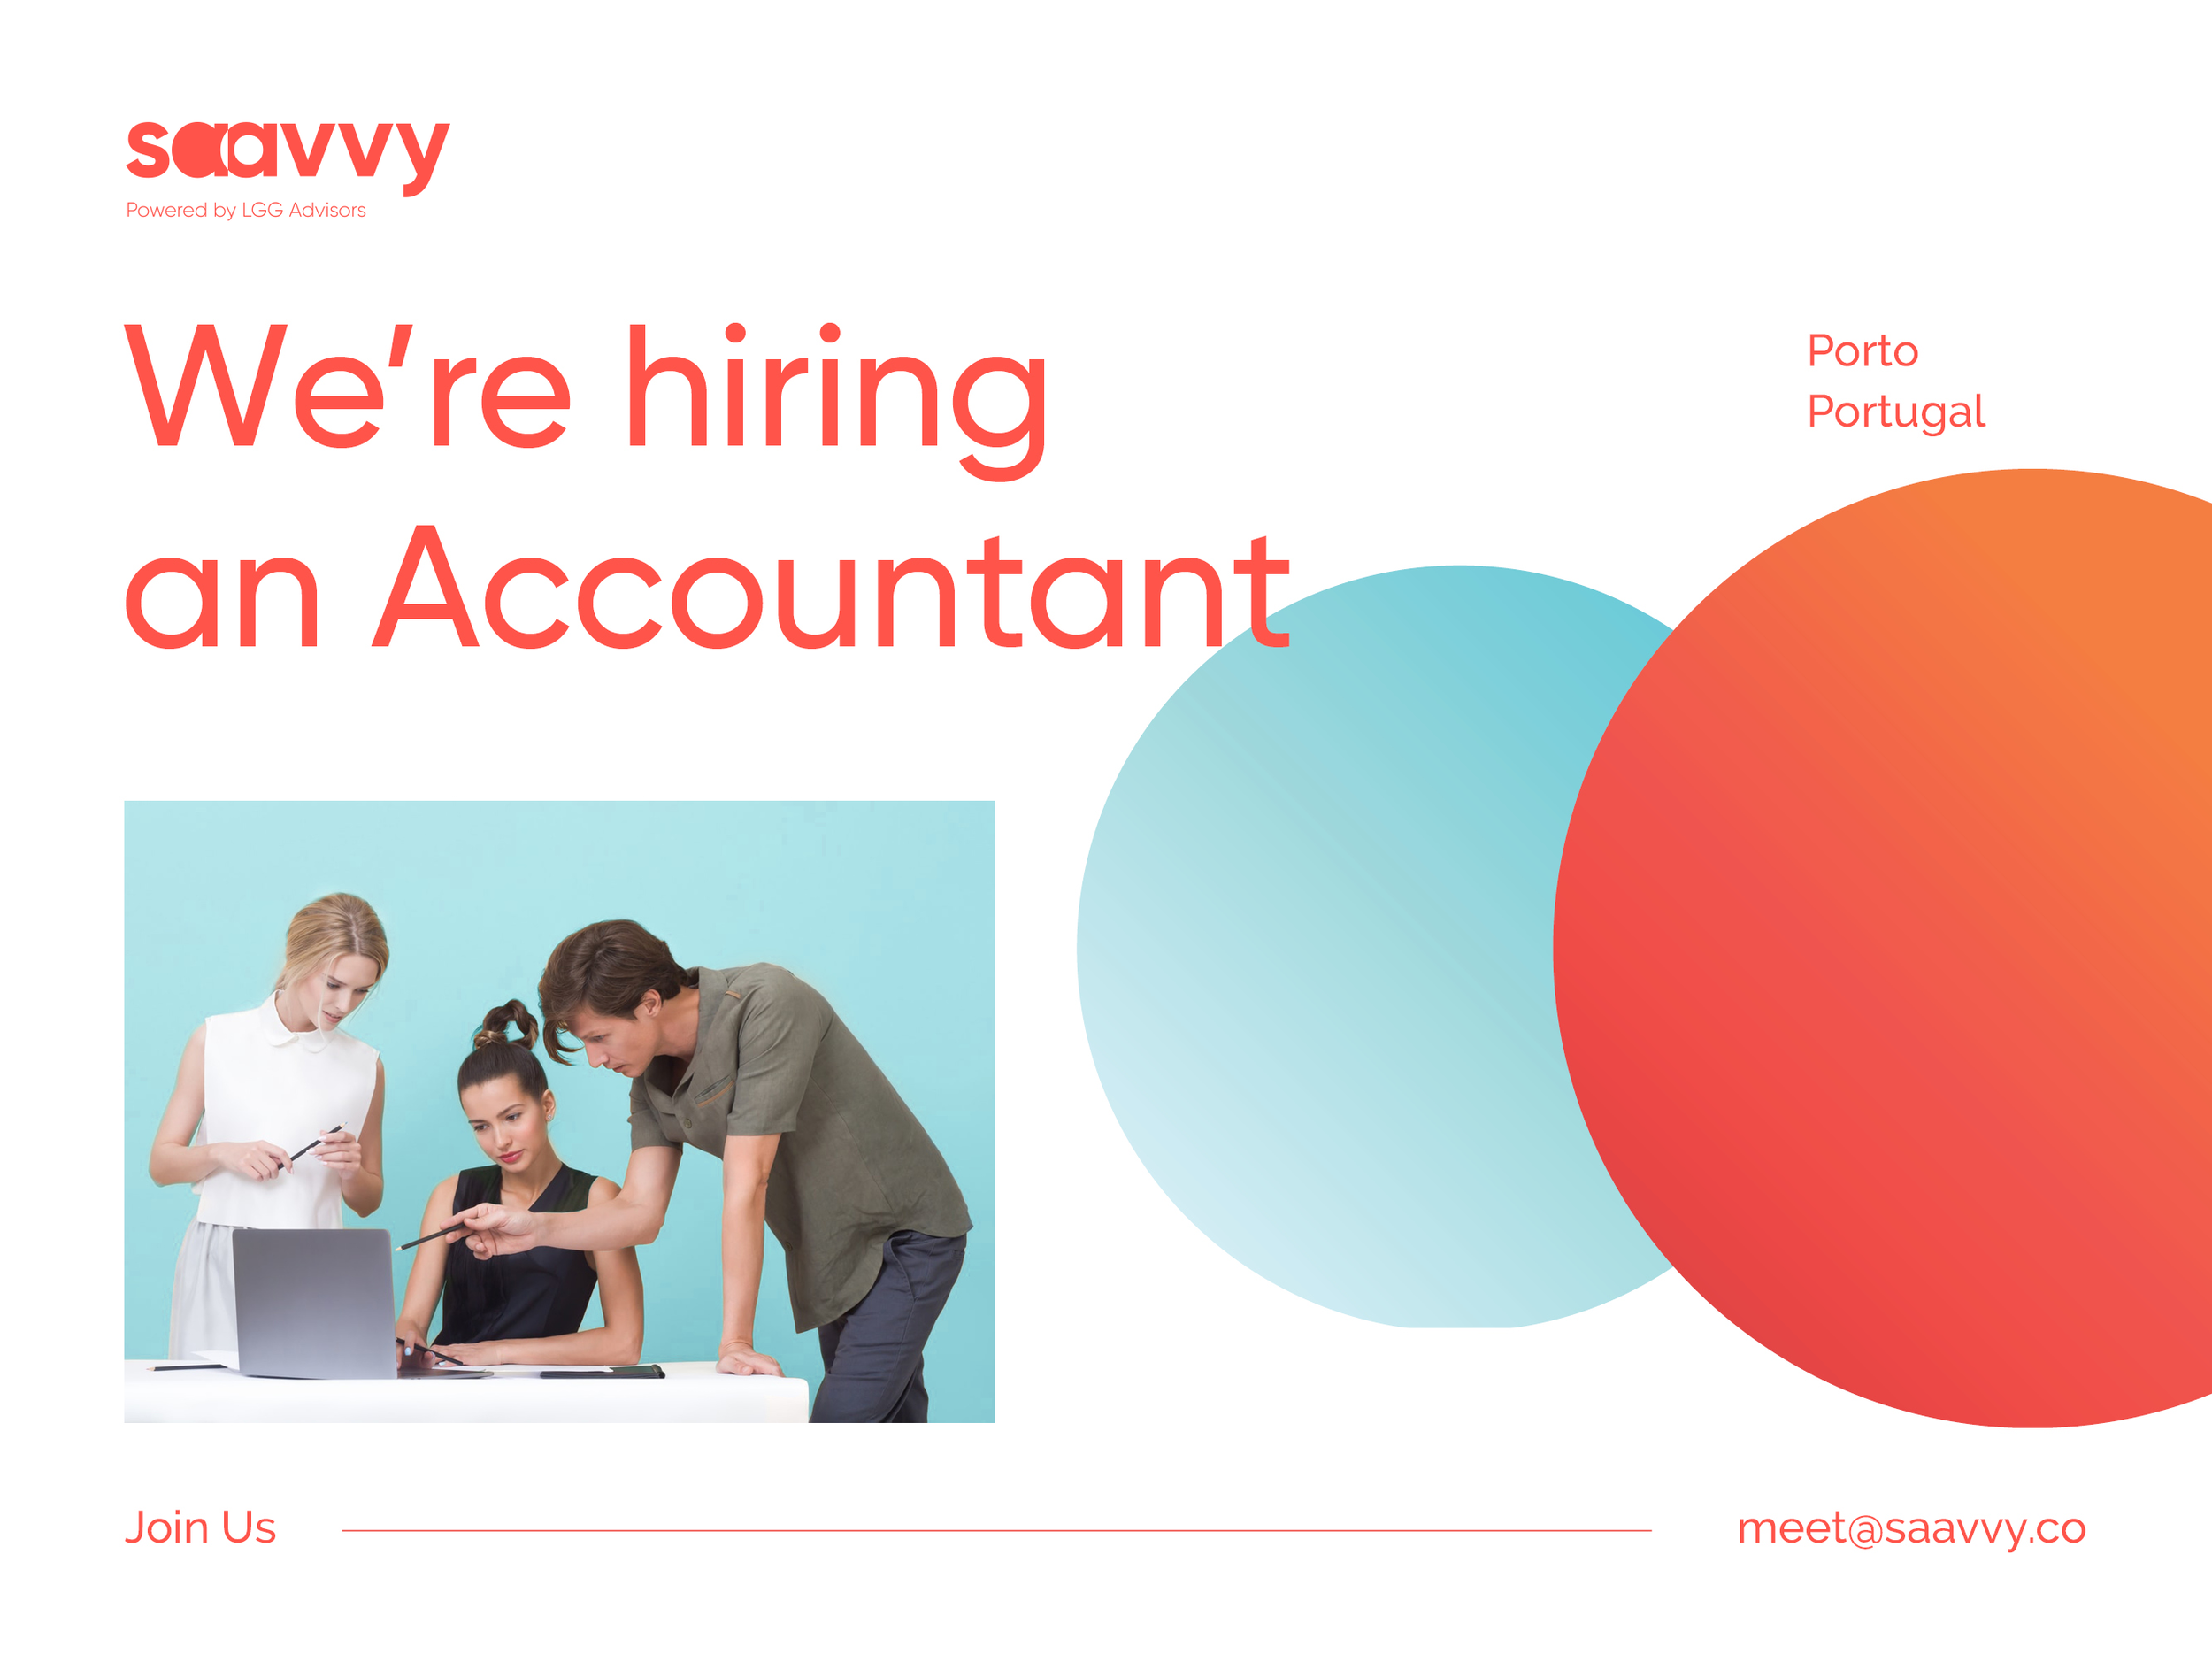 Saavvy_Accountant_Job-Announcement2.png